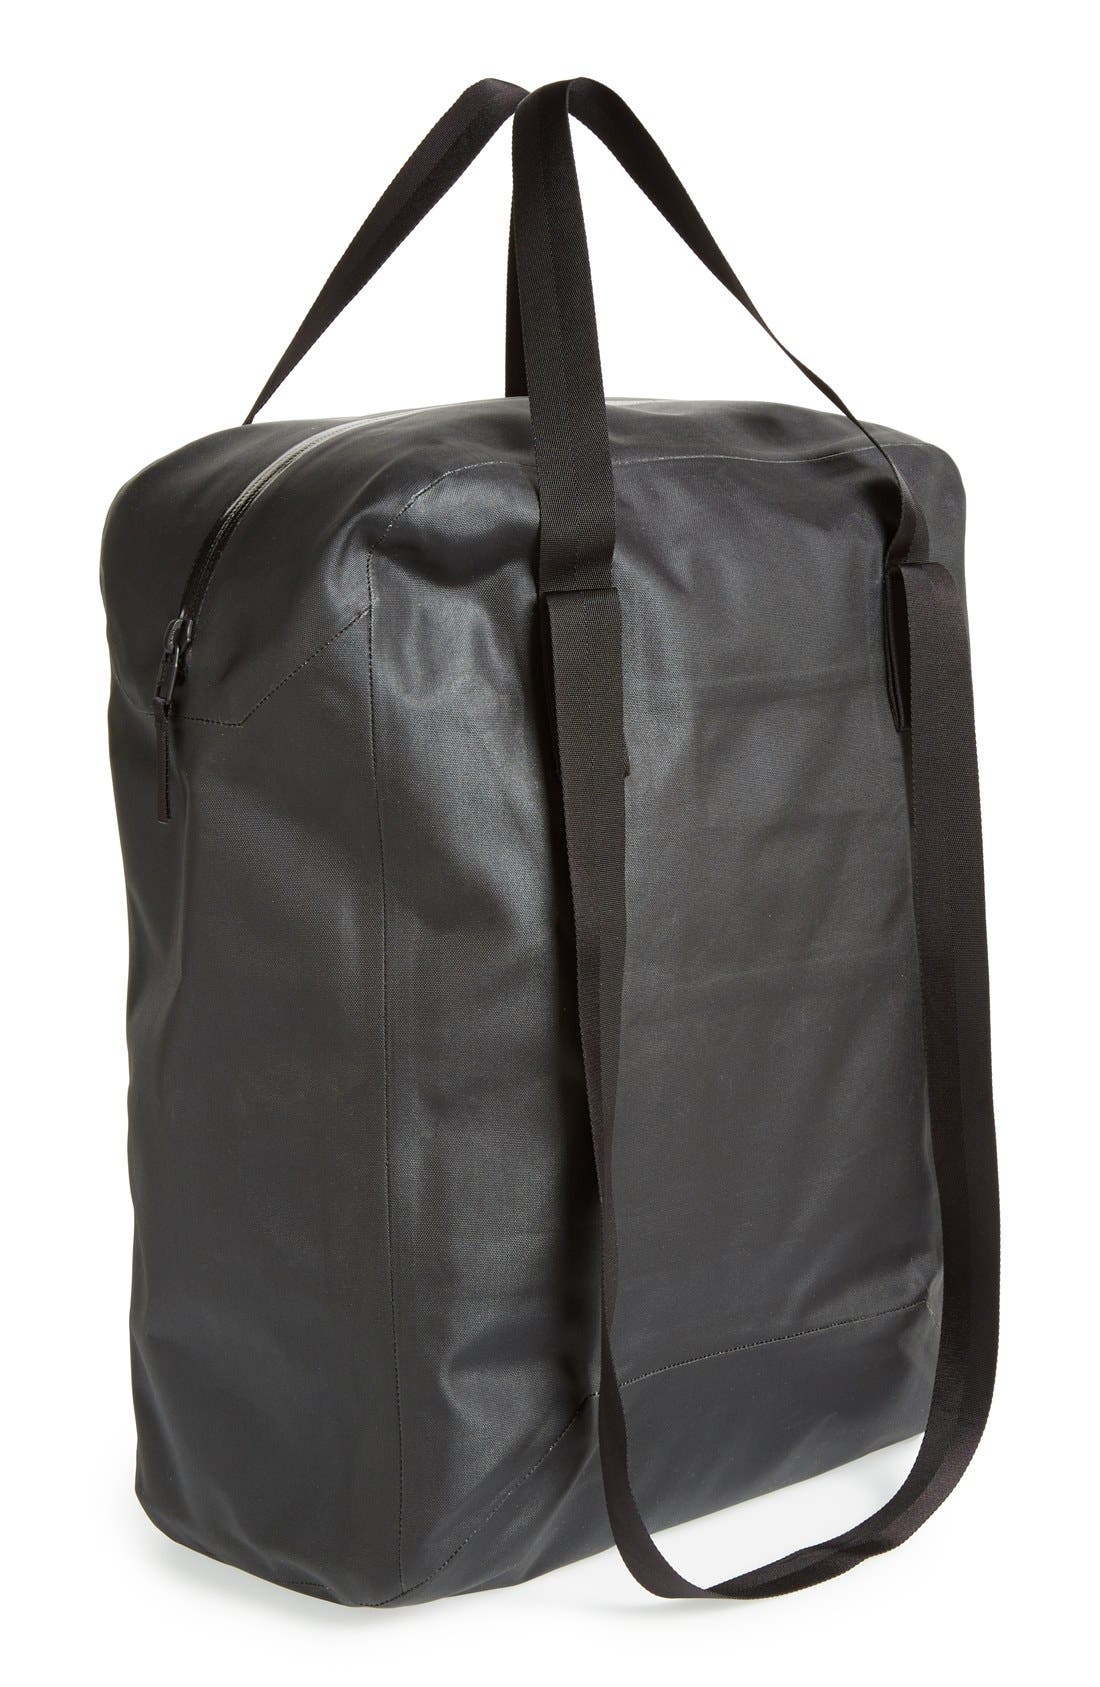 Alternate Image 1 Selected - Arc'teryx Veilance 'Seque' Water Resistant Nylon Tote